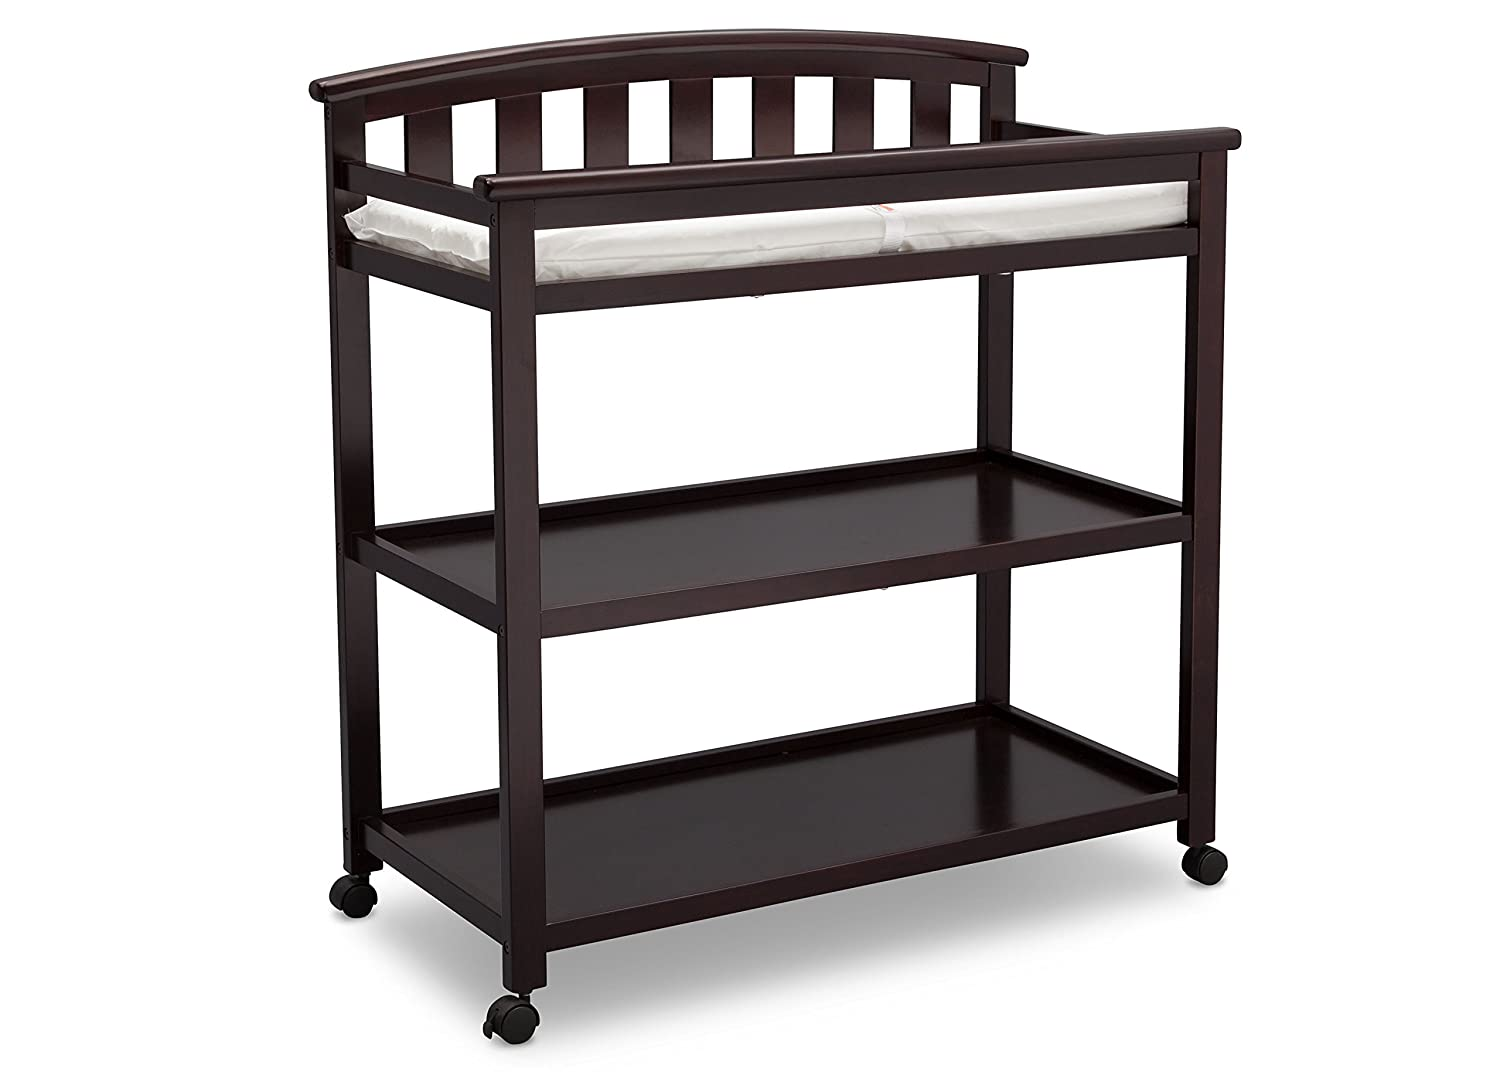 Delta Children Arch Top Changing Table with Casters, Grey Delta Enterprise Corp - PLA 540240-026